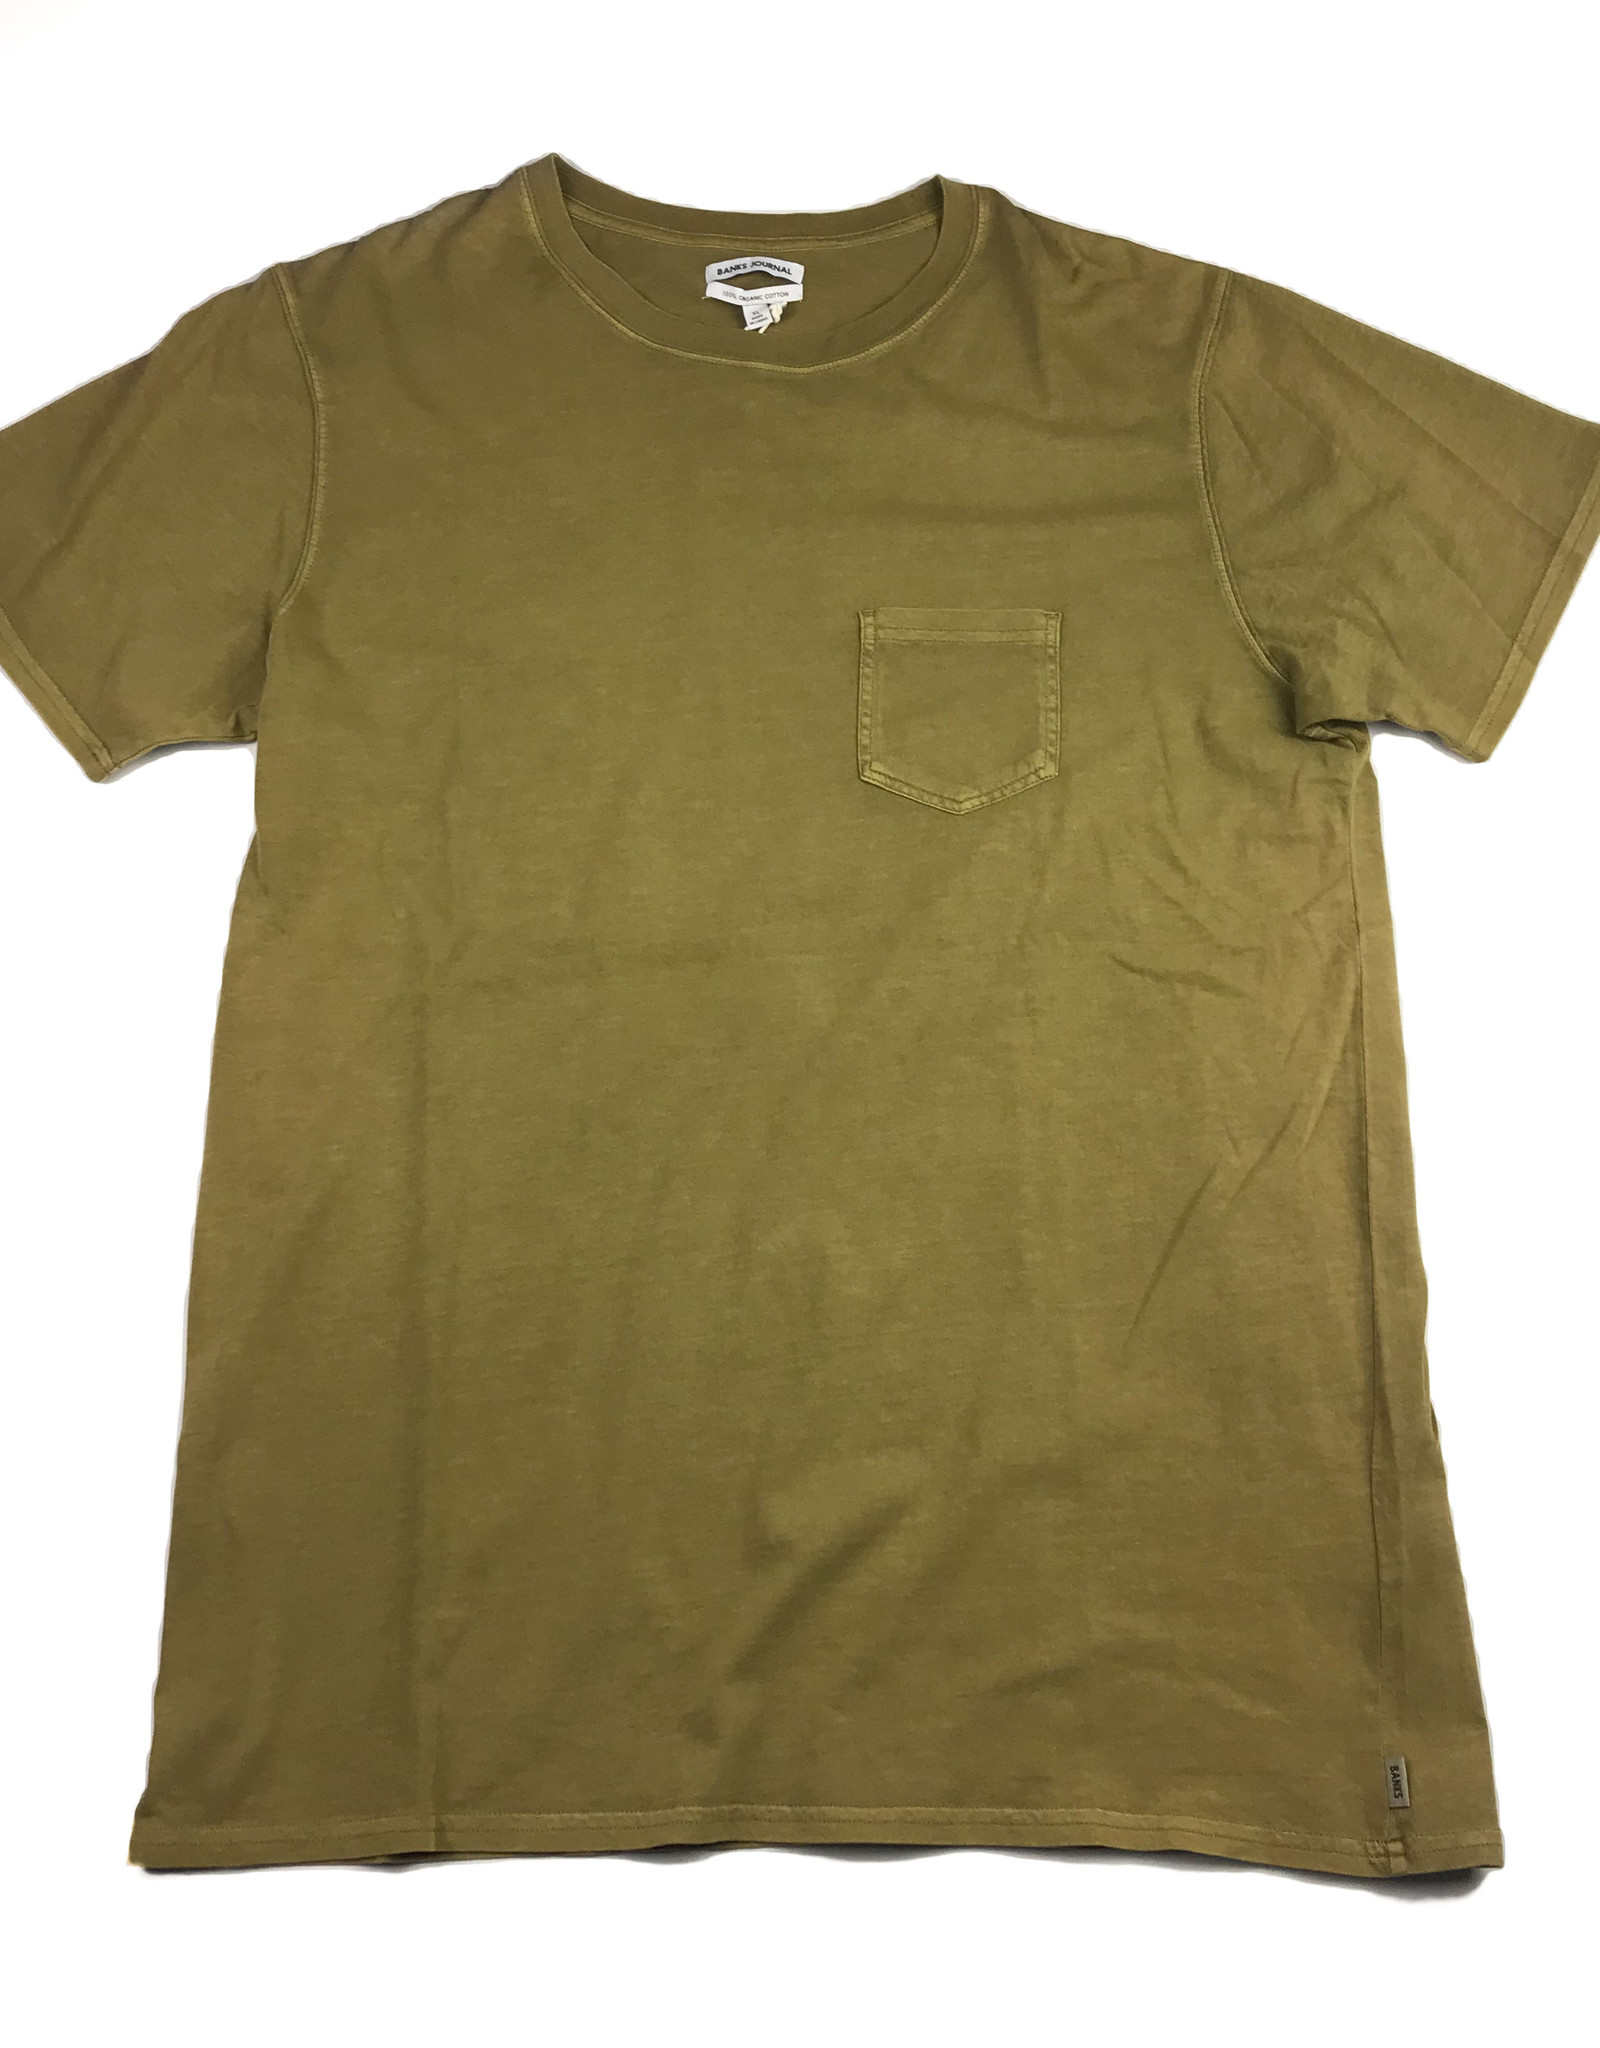 BANKS JOURNAL BANKS PRIMARY FADED TEE - OLIVE GREEN